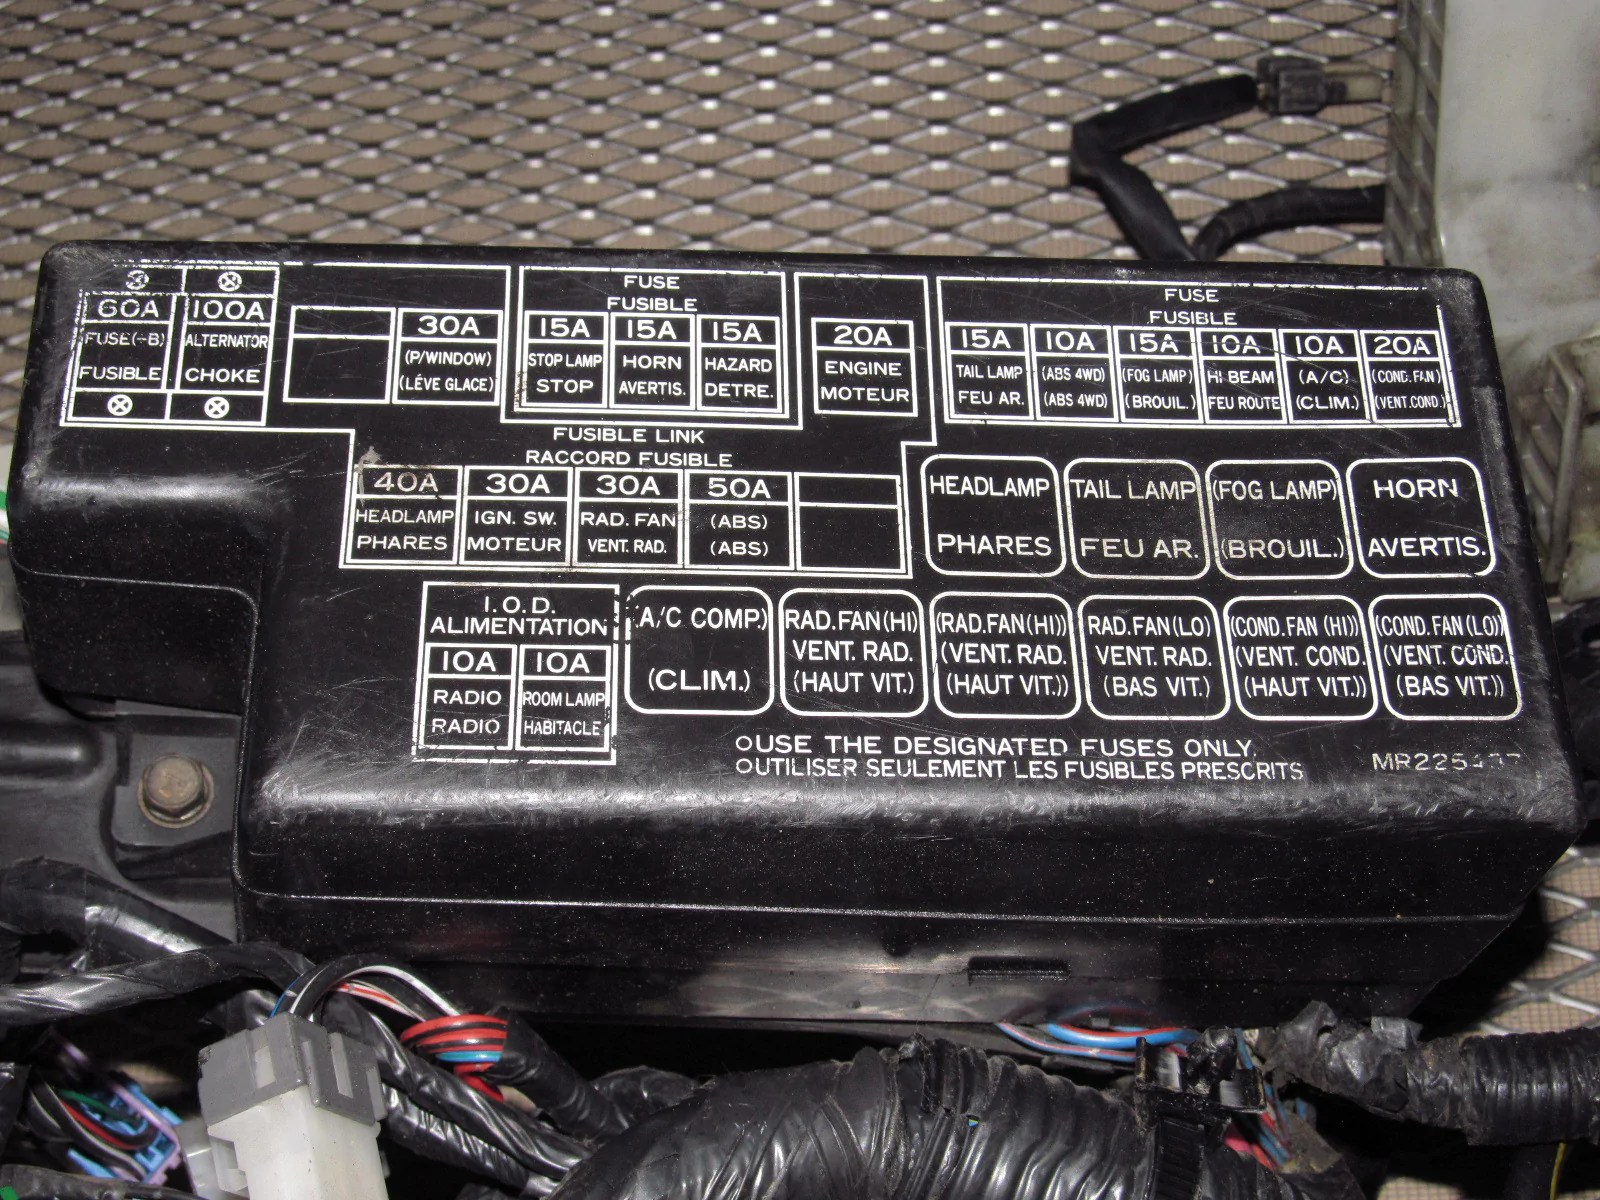 medium resolution of eclipse gst fuse diagram wiring diagrams konsult 98 mitsubishi eclipse fuse box diagram 98 mitsubishi eclipse fuse box diagram